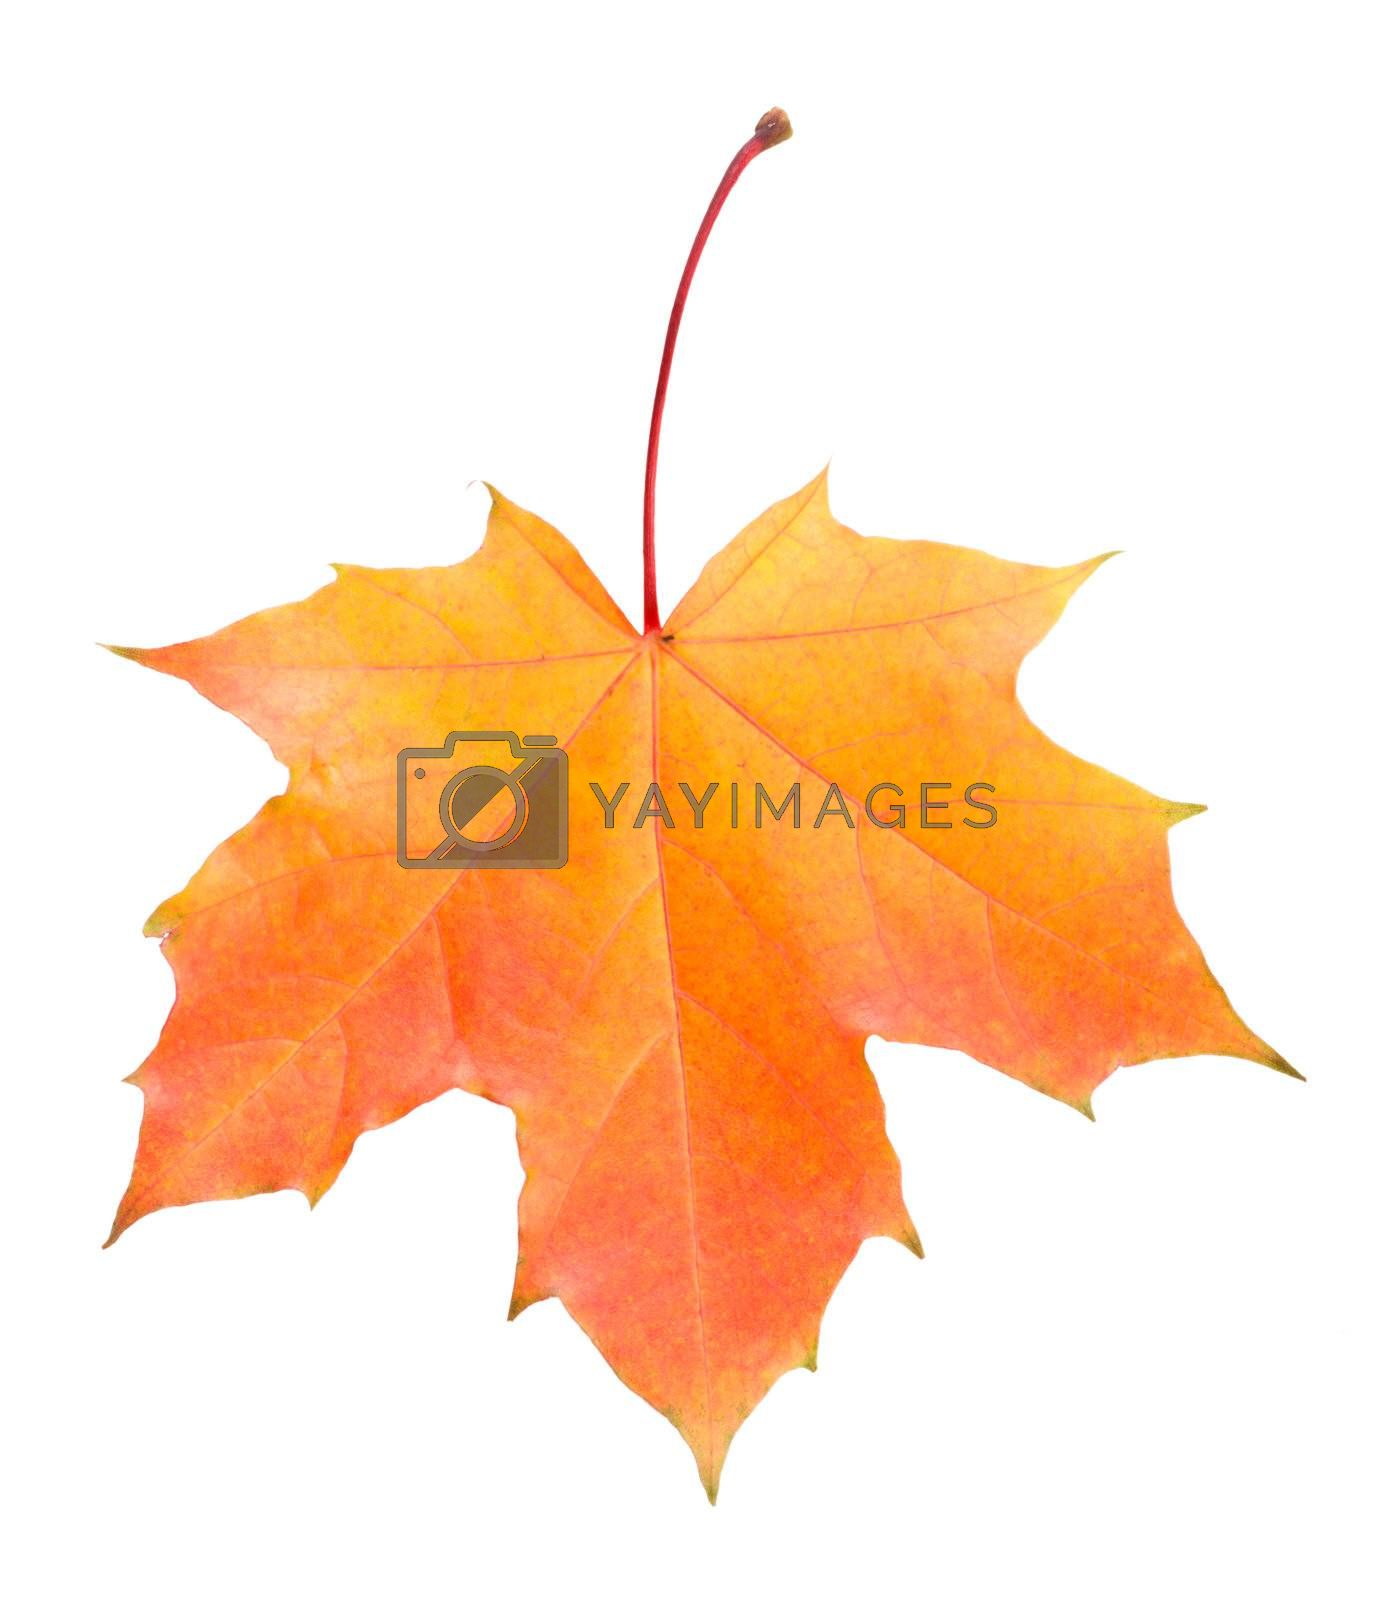 close-up single fallen yellow and red maple leaf, isolated on white